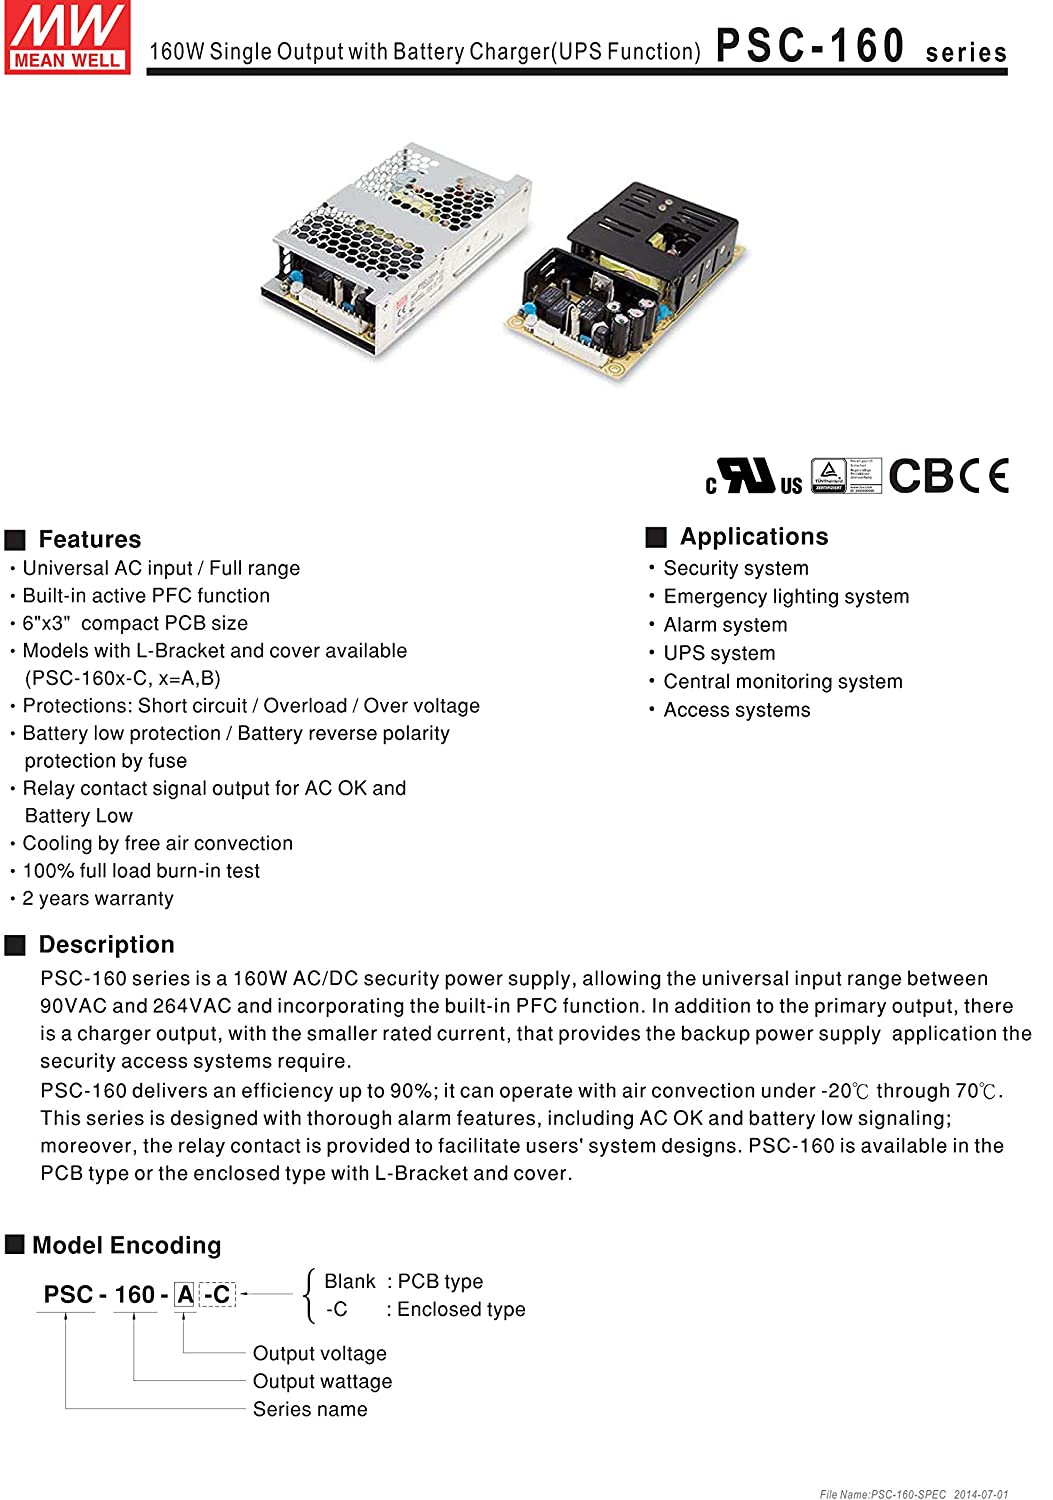 Mean Well Psc 160a 138v 76a 4a 160w Single Output With Battery Charger Circuit Using A Relay Electronic Ups Function Security Series Industrial Scientific